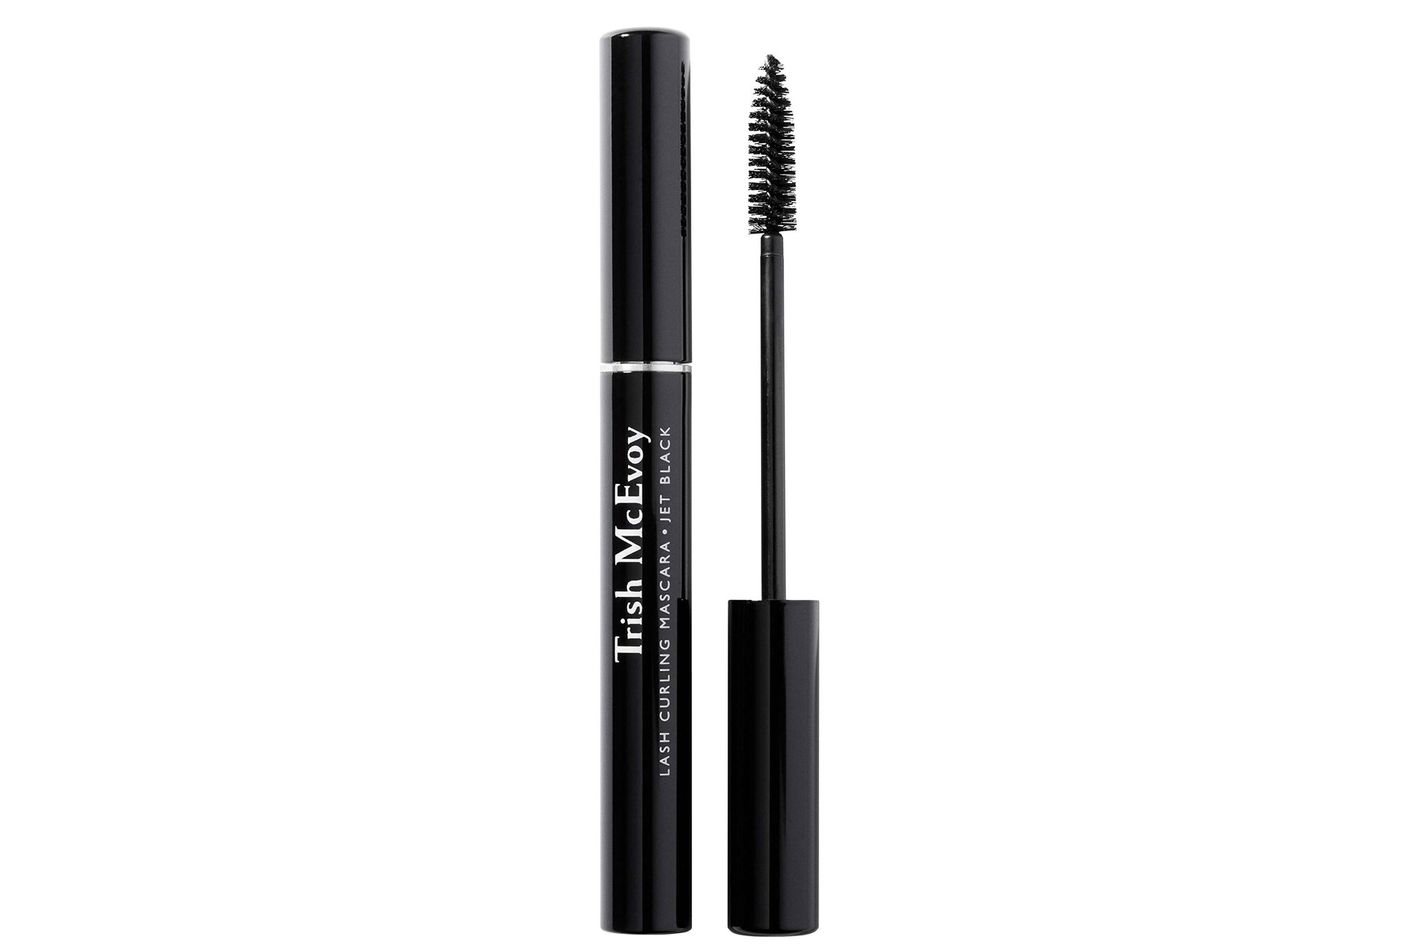 Trish McEvoy Lash-Curling Mascara